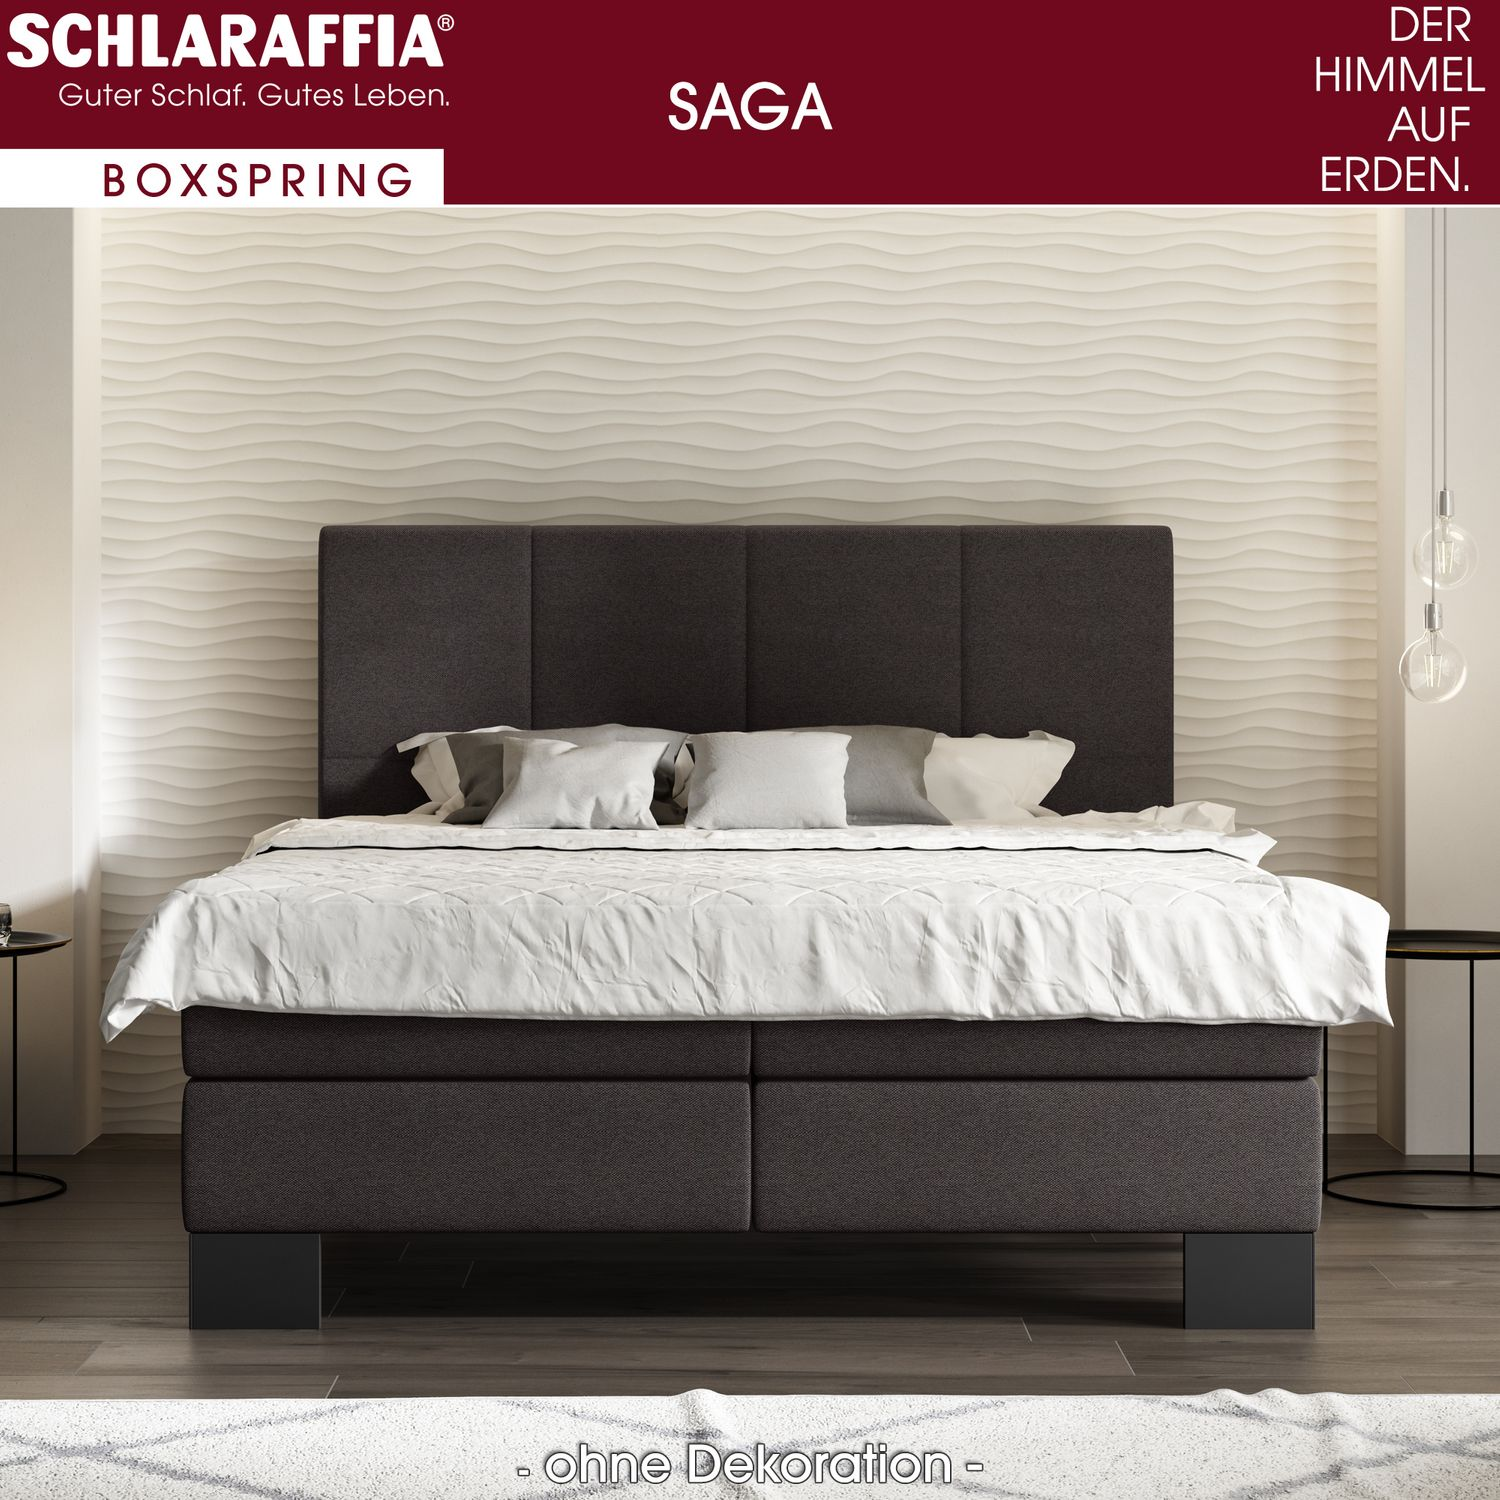 schlaraffia saga box cubic boxspringbett 140x200 cm. Black Bedroom Furniture Sets. Home Design Ideas